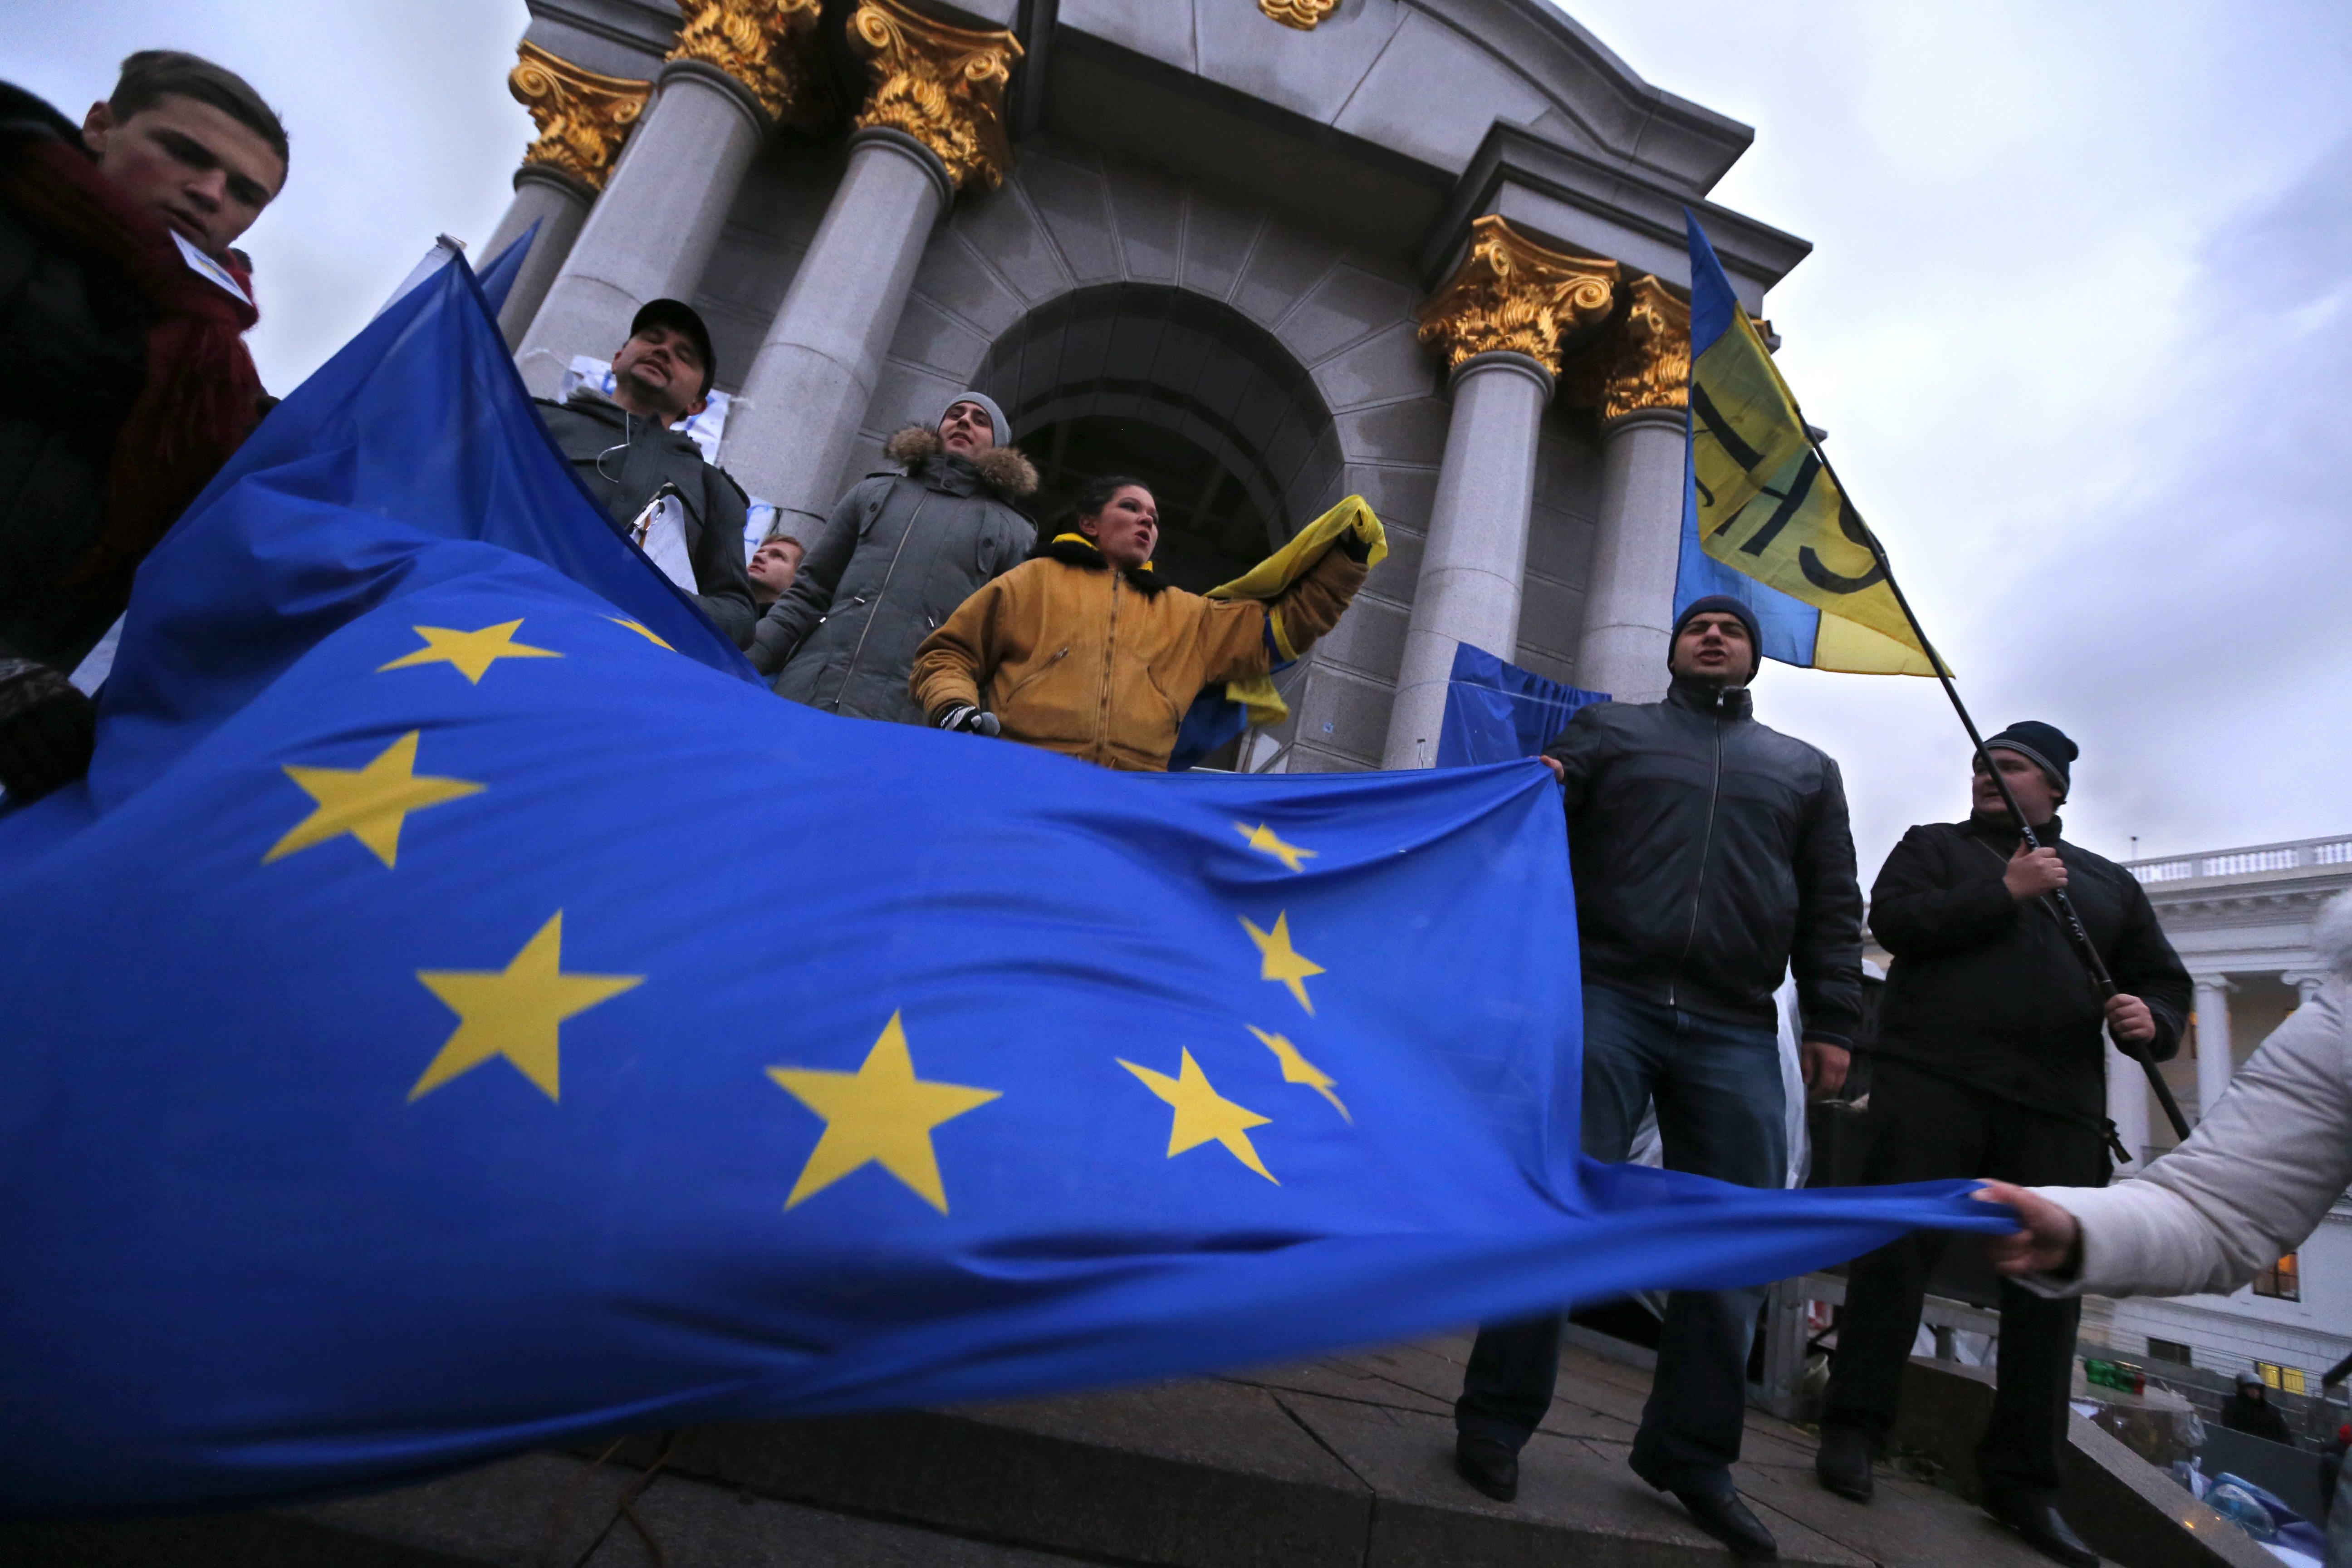 ukraine eu Five eu countries remain firmly against ukraine ever joining the union, french diplomat pierre vimont, who has helped negotiate the ukraine - eu association agreement, told a dutch publication ahead of next week's advisory referendum on the.